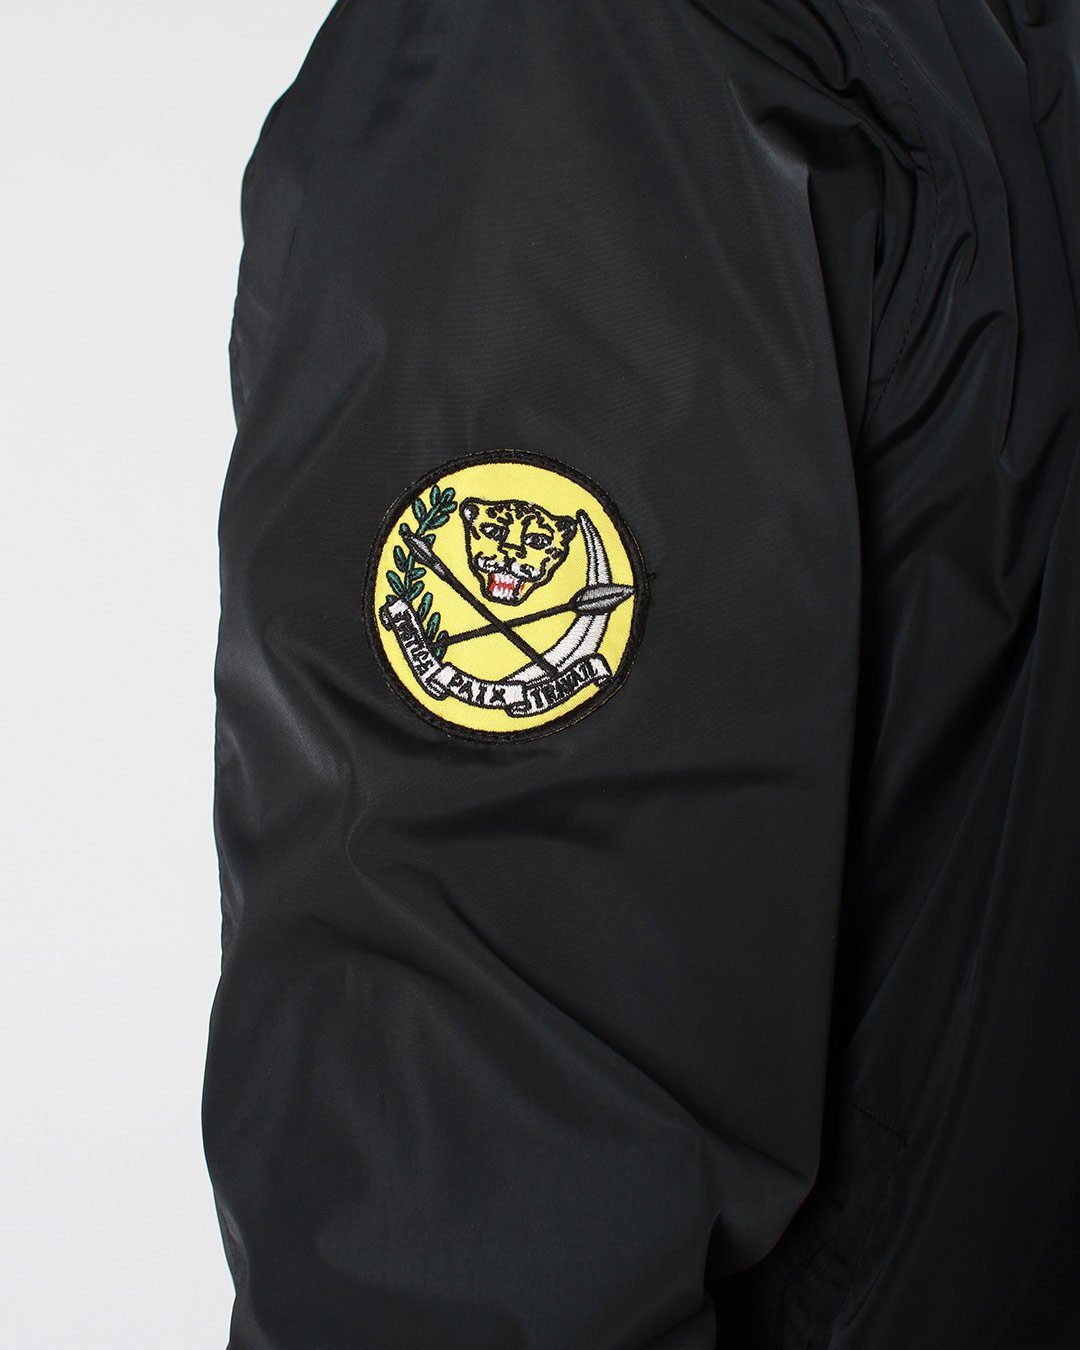 Rumble in the Jungle Stadium Jacket Bundle